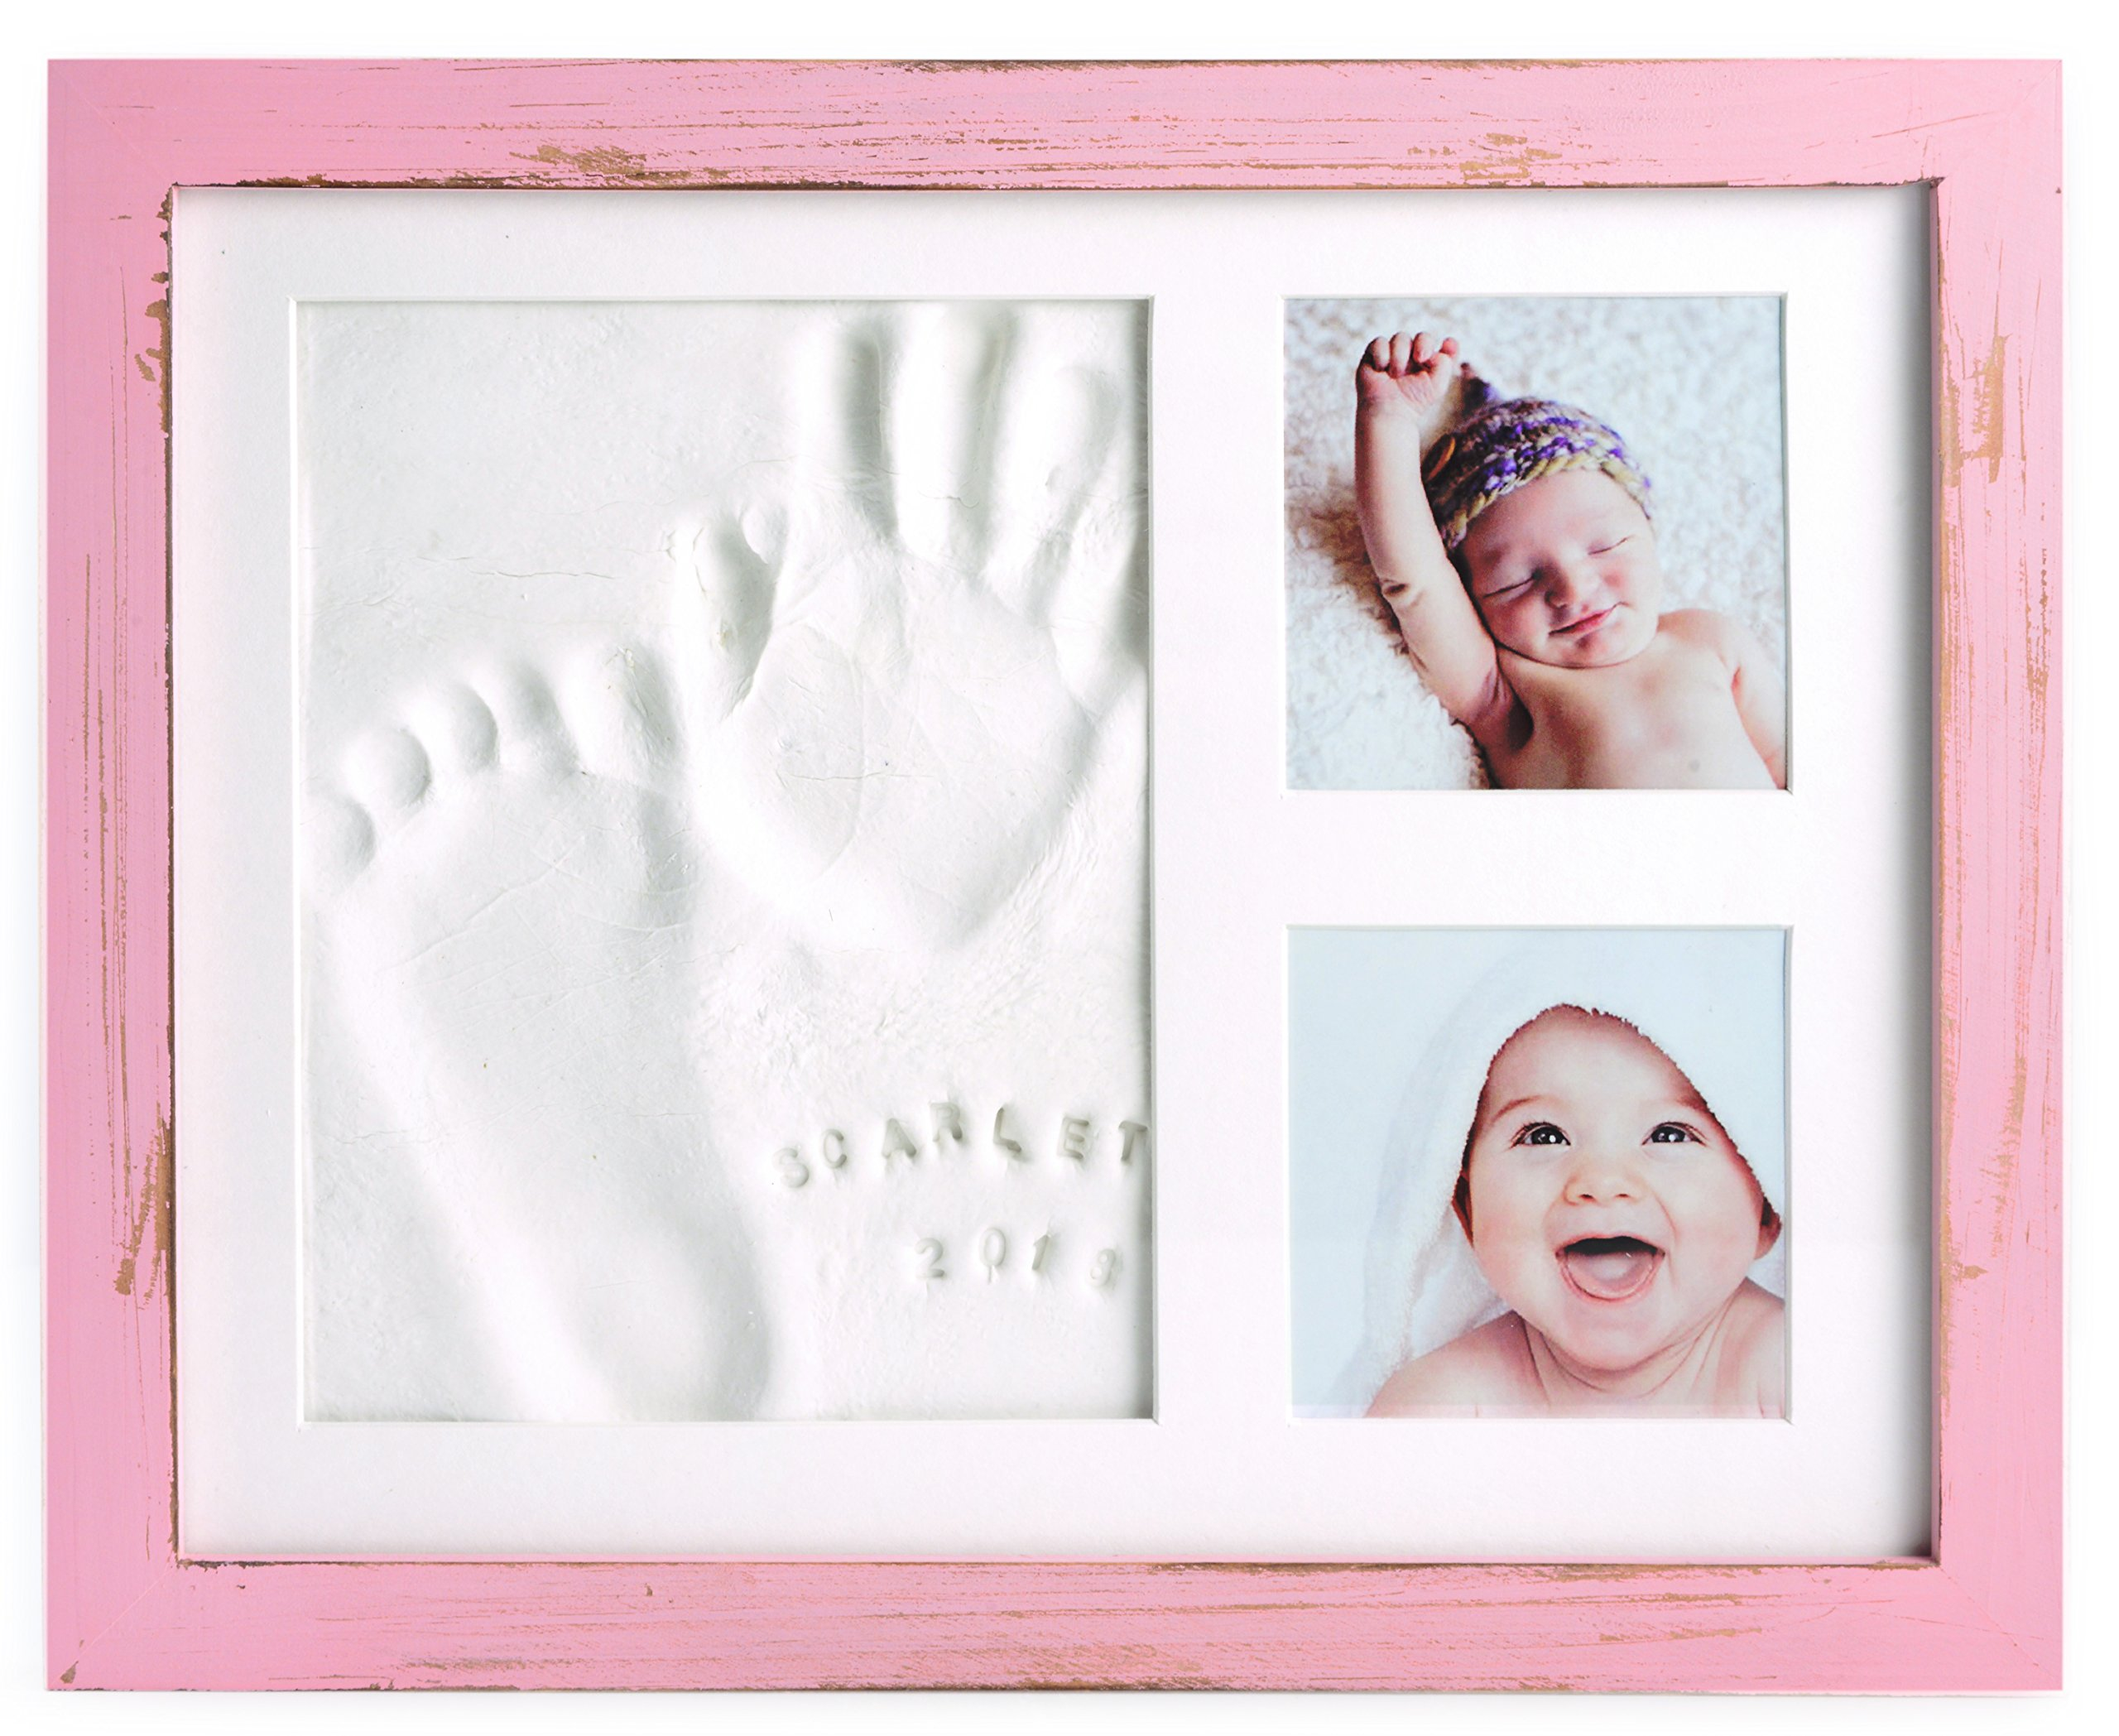 Amazon.com: Baby Handprint Frame Kit and Footprint Mold with Clay ...